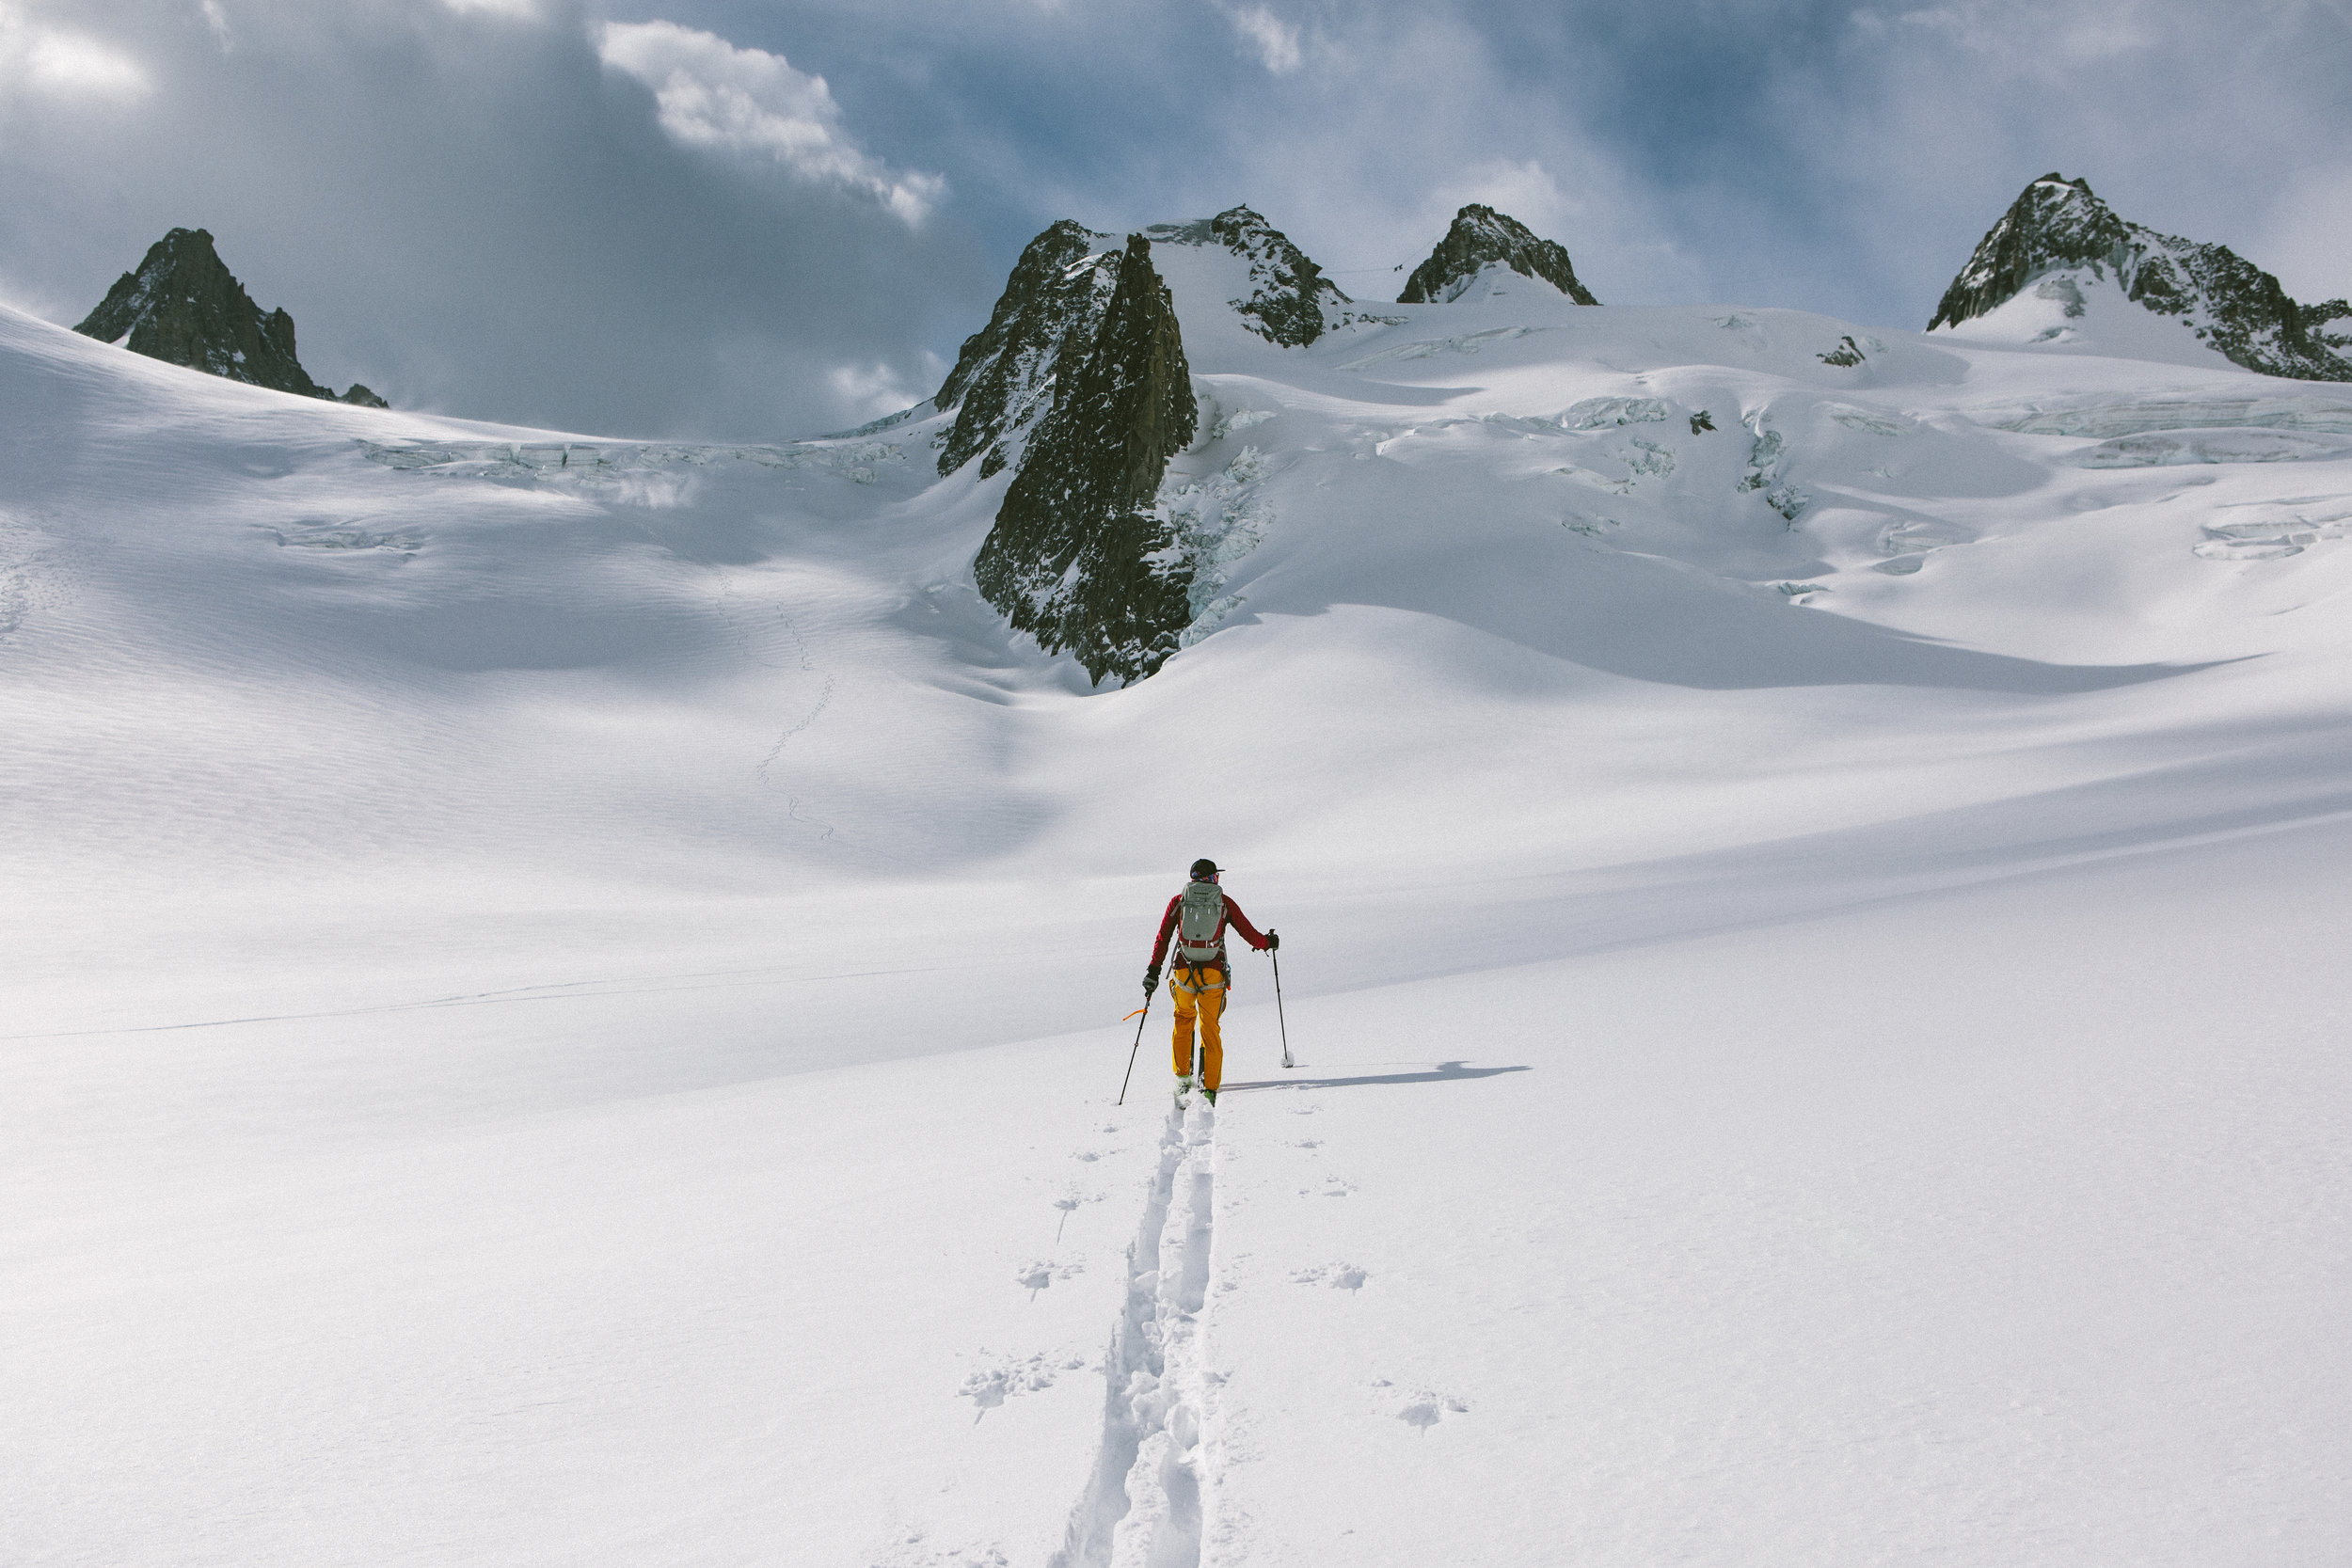 Rob skinning towards the Italian side of Mont Blanc, in the Vallée Blanche. Photo courtesy of Matt Kennedy